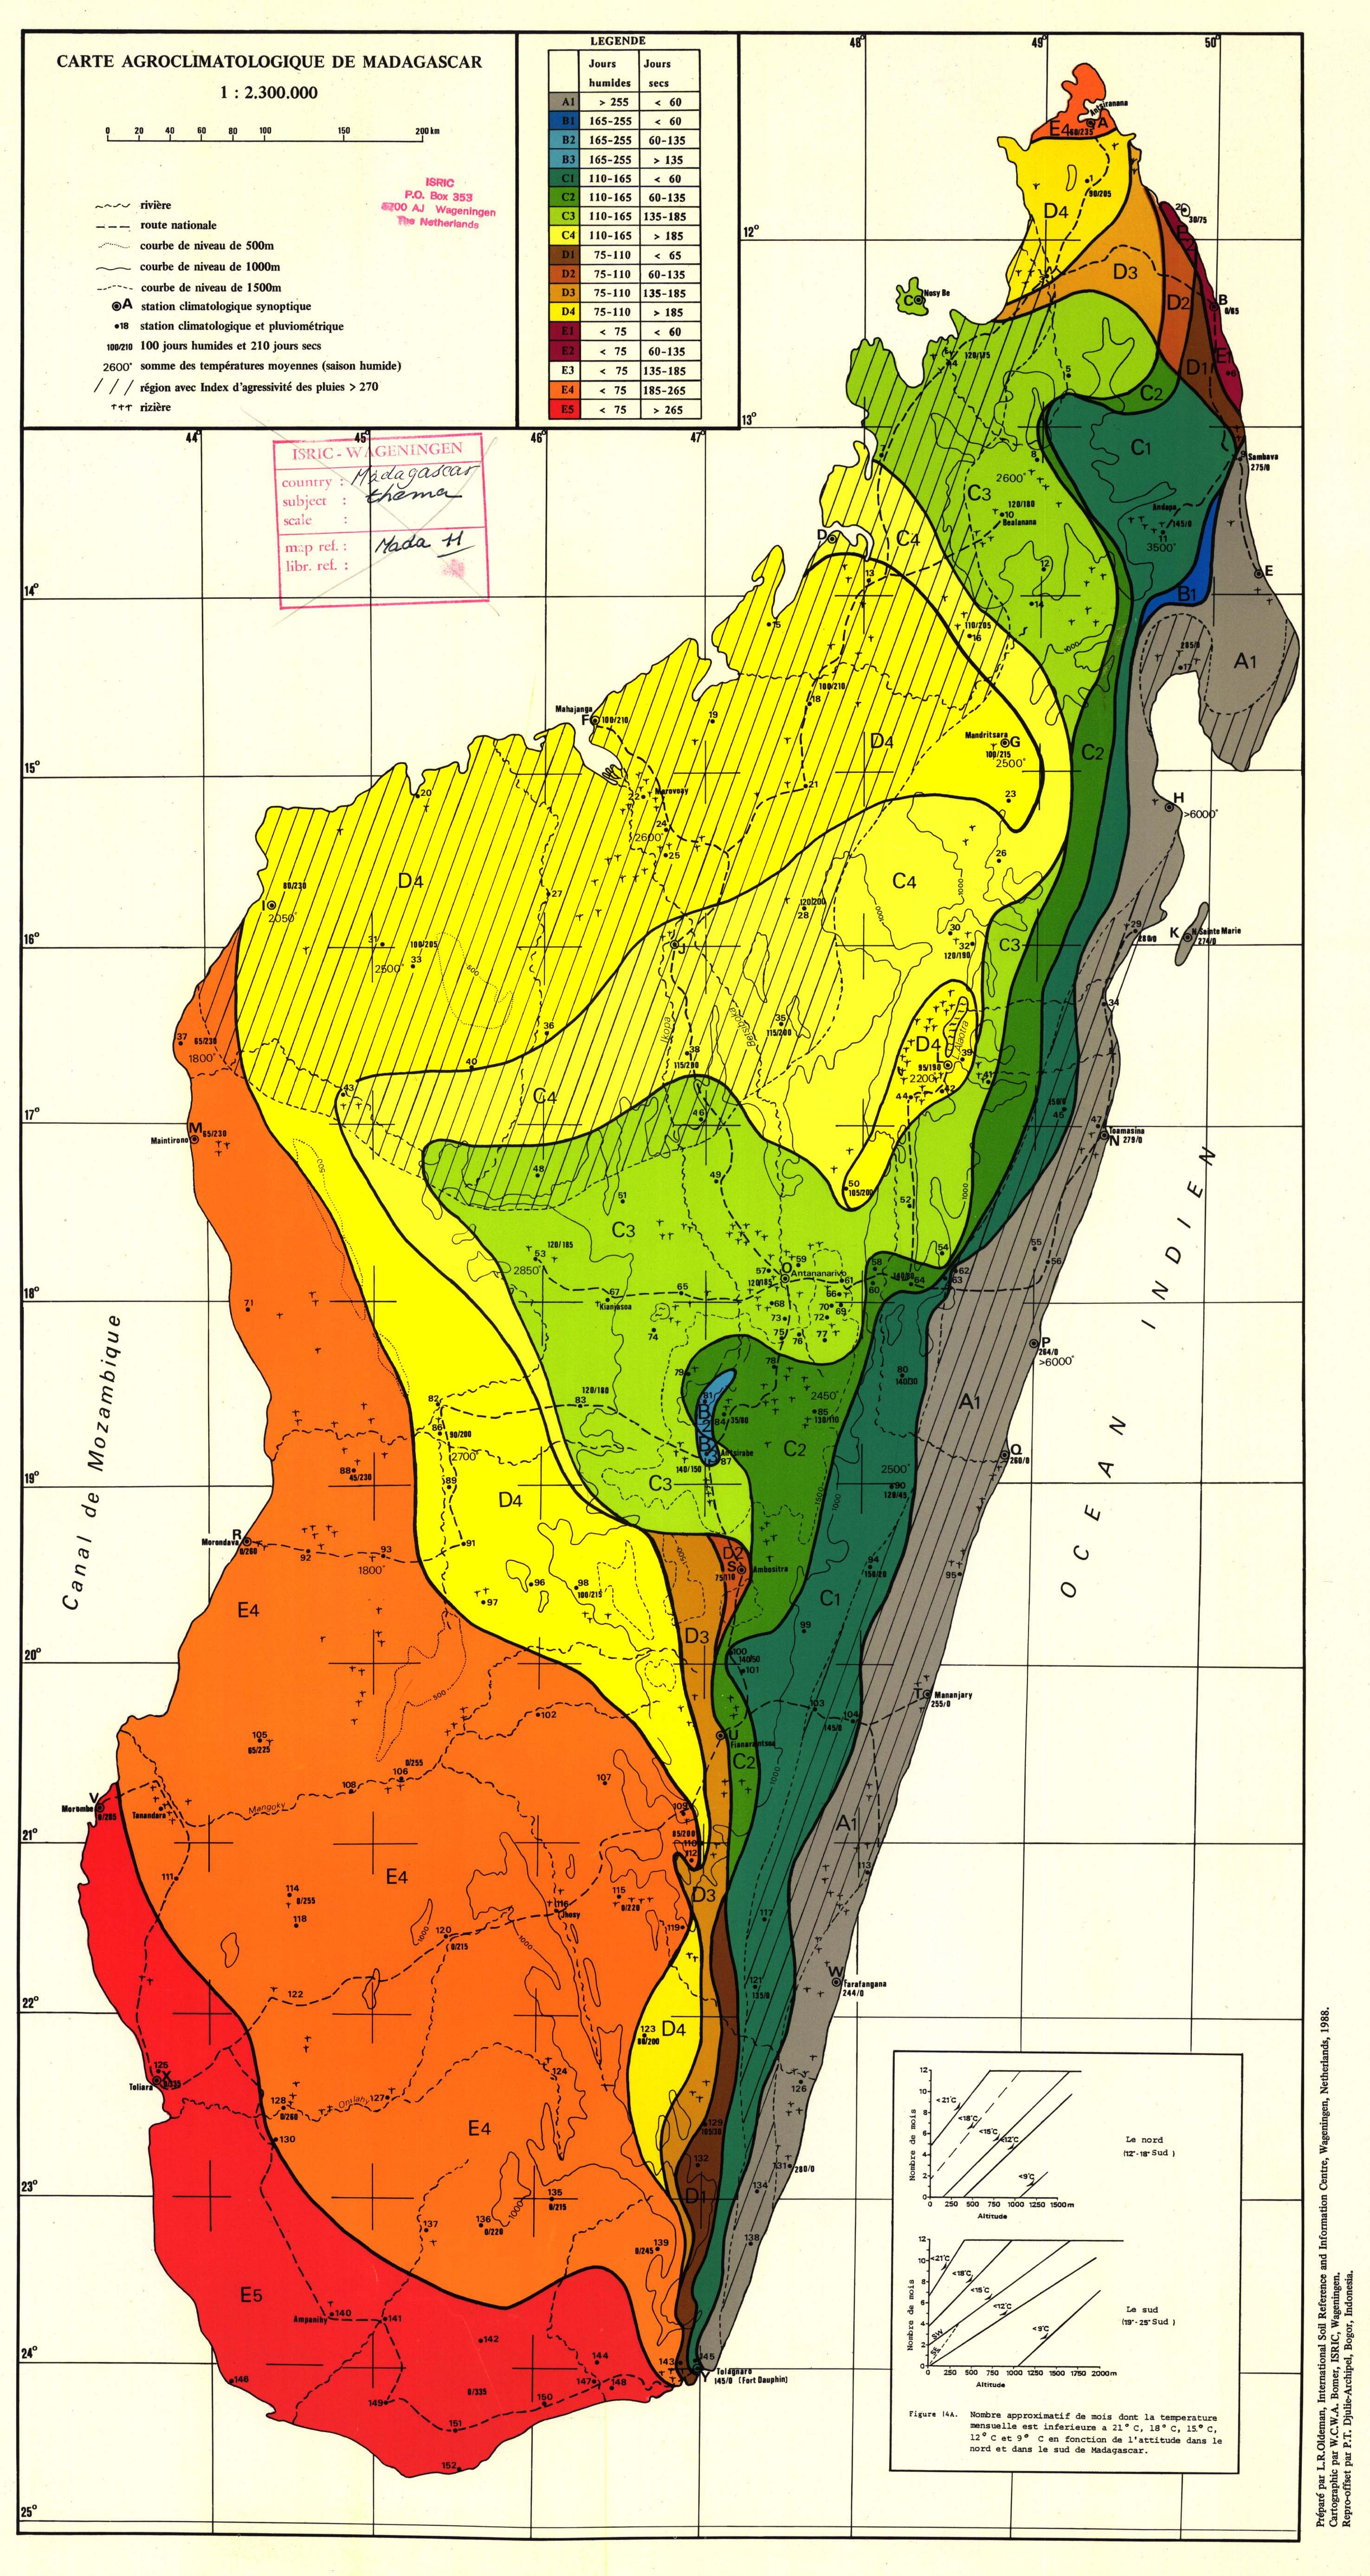 Carte Climat Madagascar.The Soil Maps Of Africa Display Maps